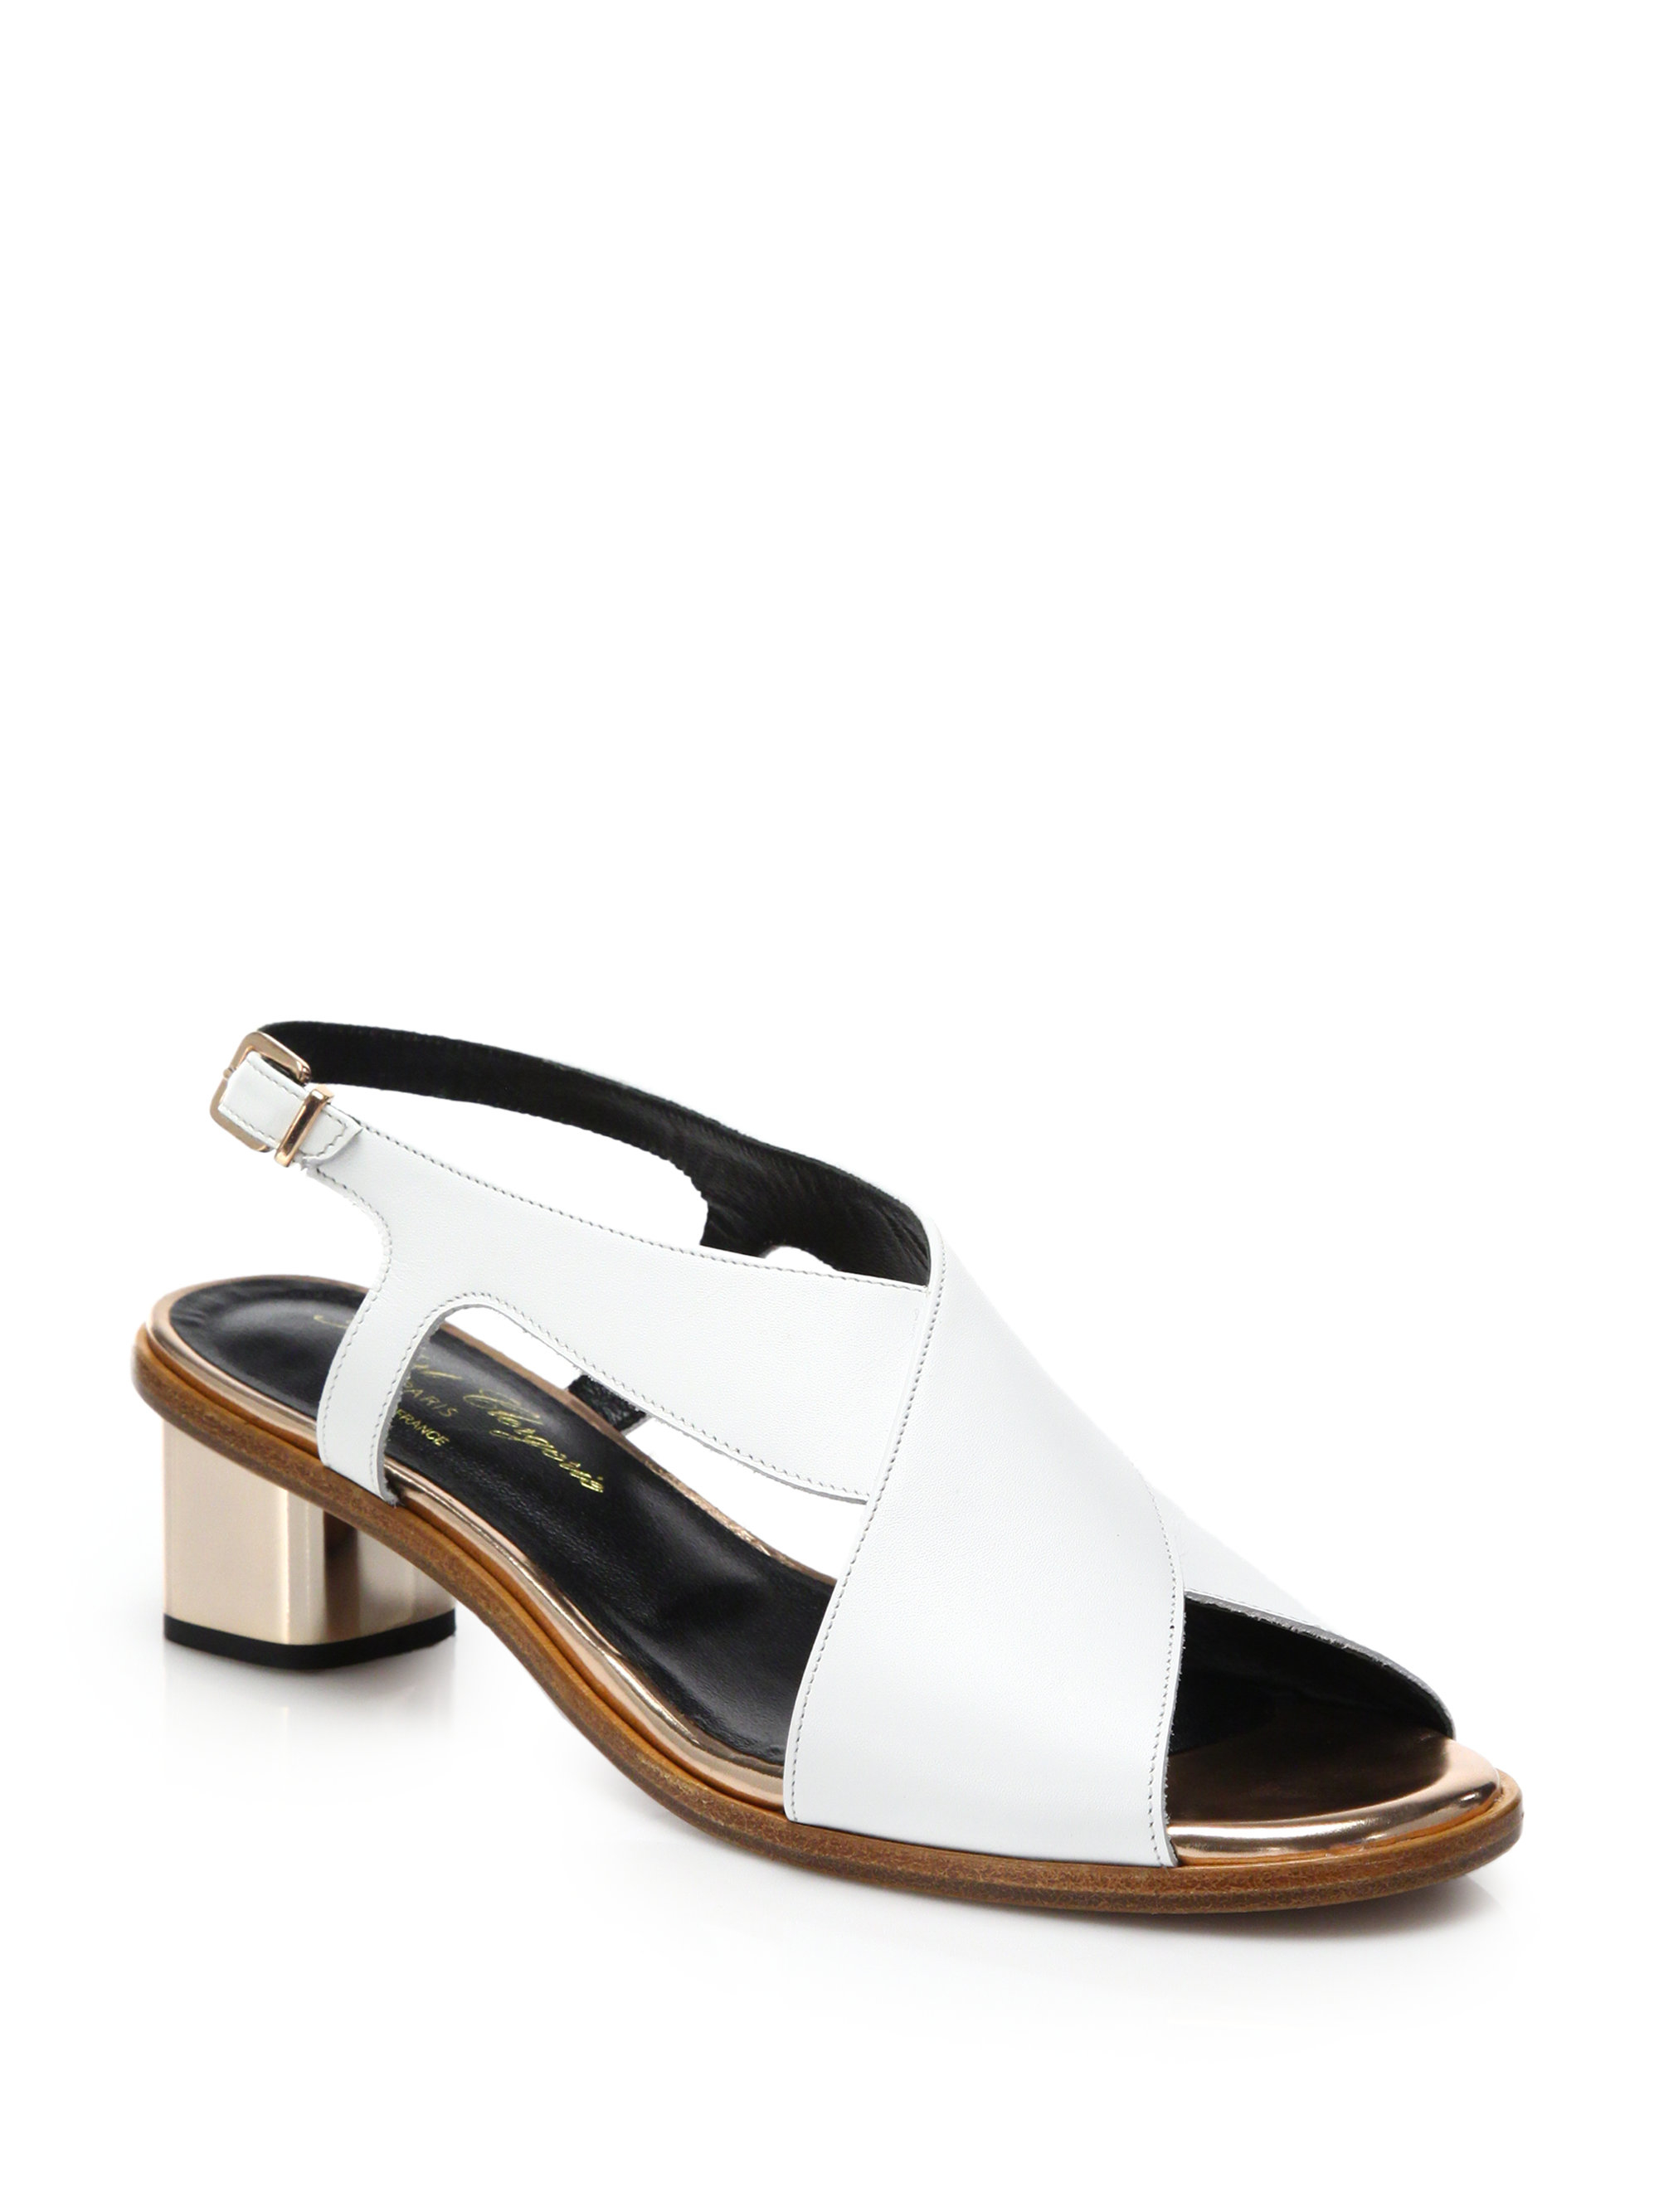 Robert Clergerie Clergerie Paris Leather Slingback Sandals cheapest high quality buy online buy cheap free shipping discount outlet locations 4x96AL5VRX